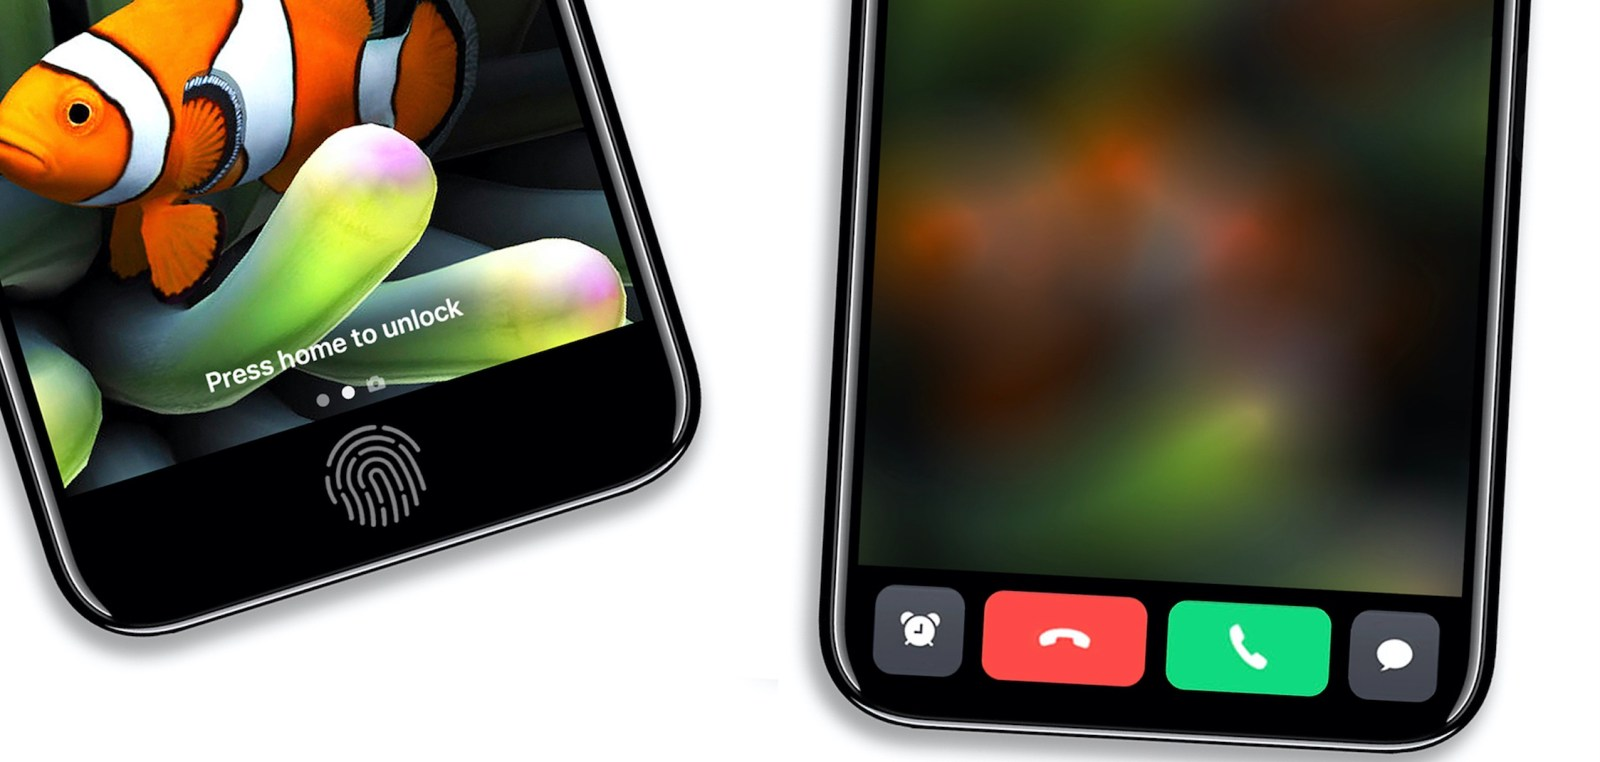 Latest iPhone 8 renders imagine the potential of rumored 'function area'